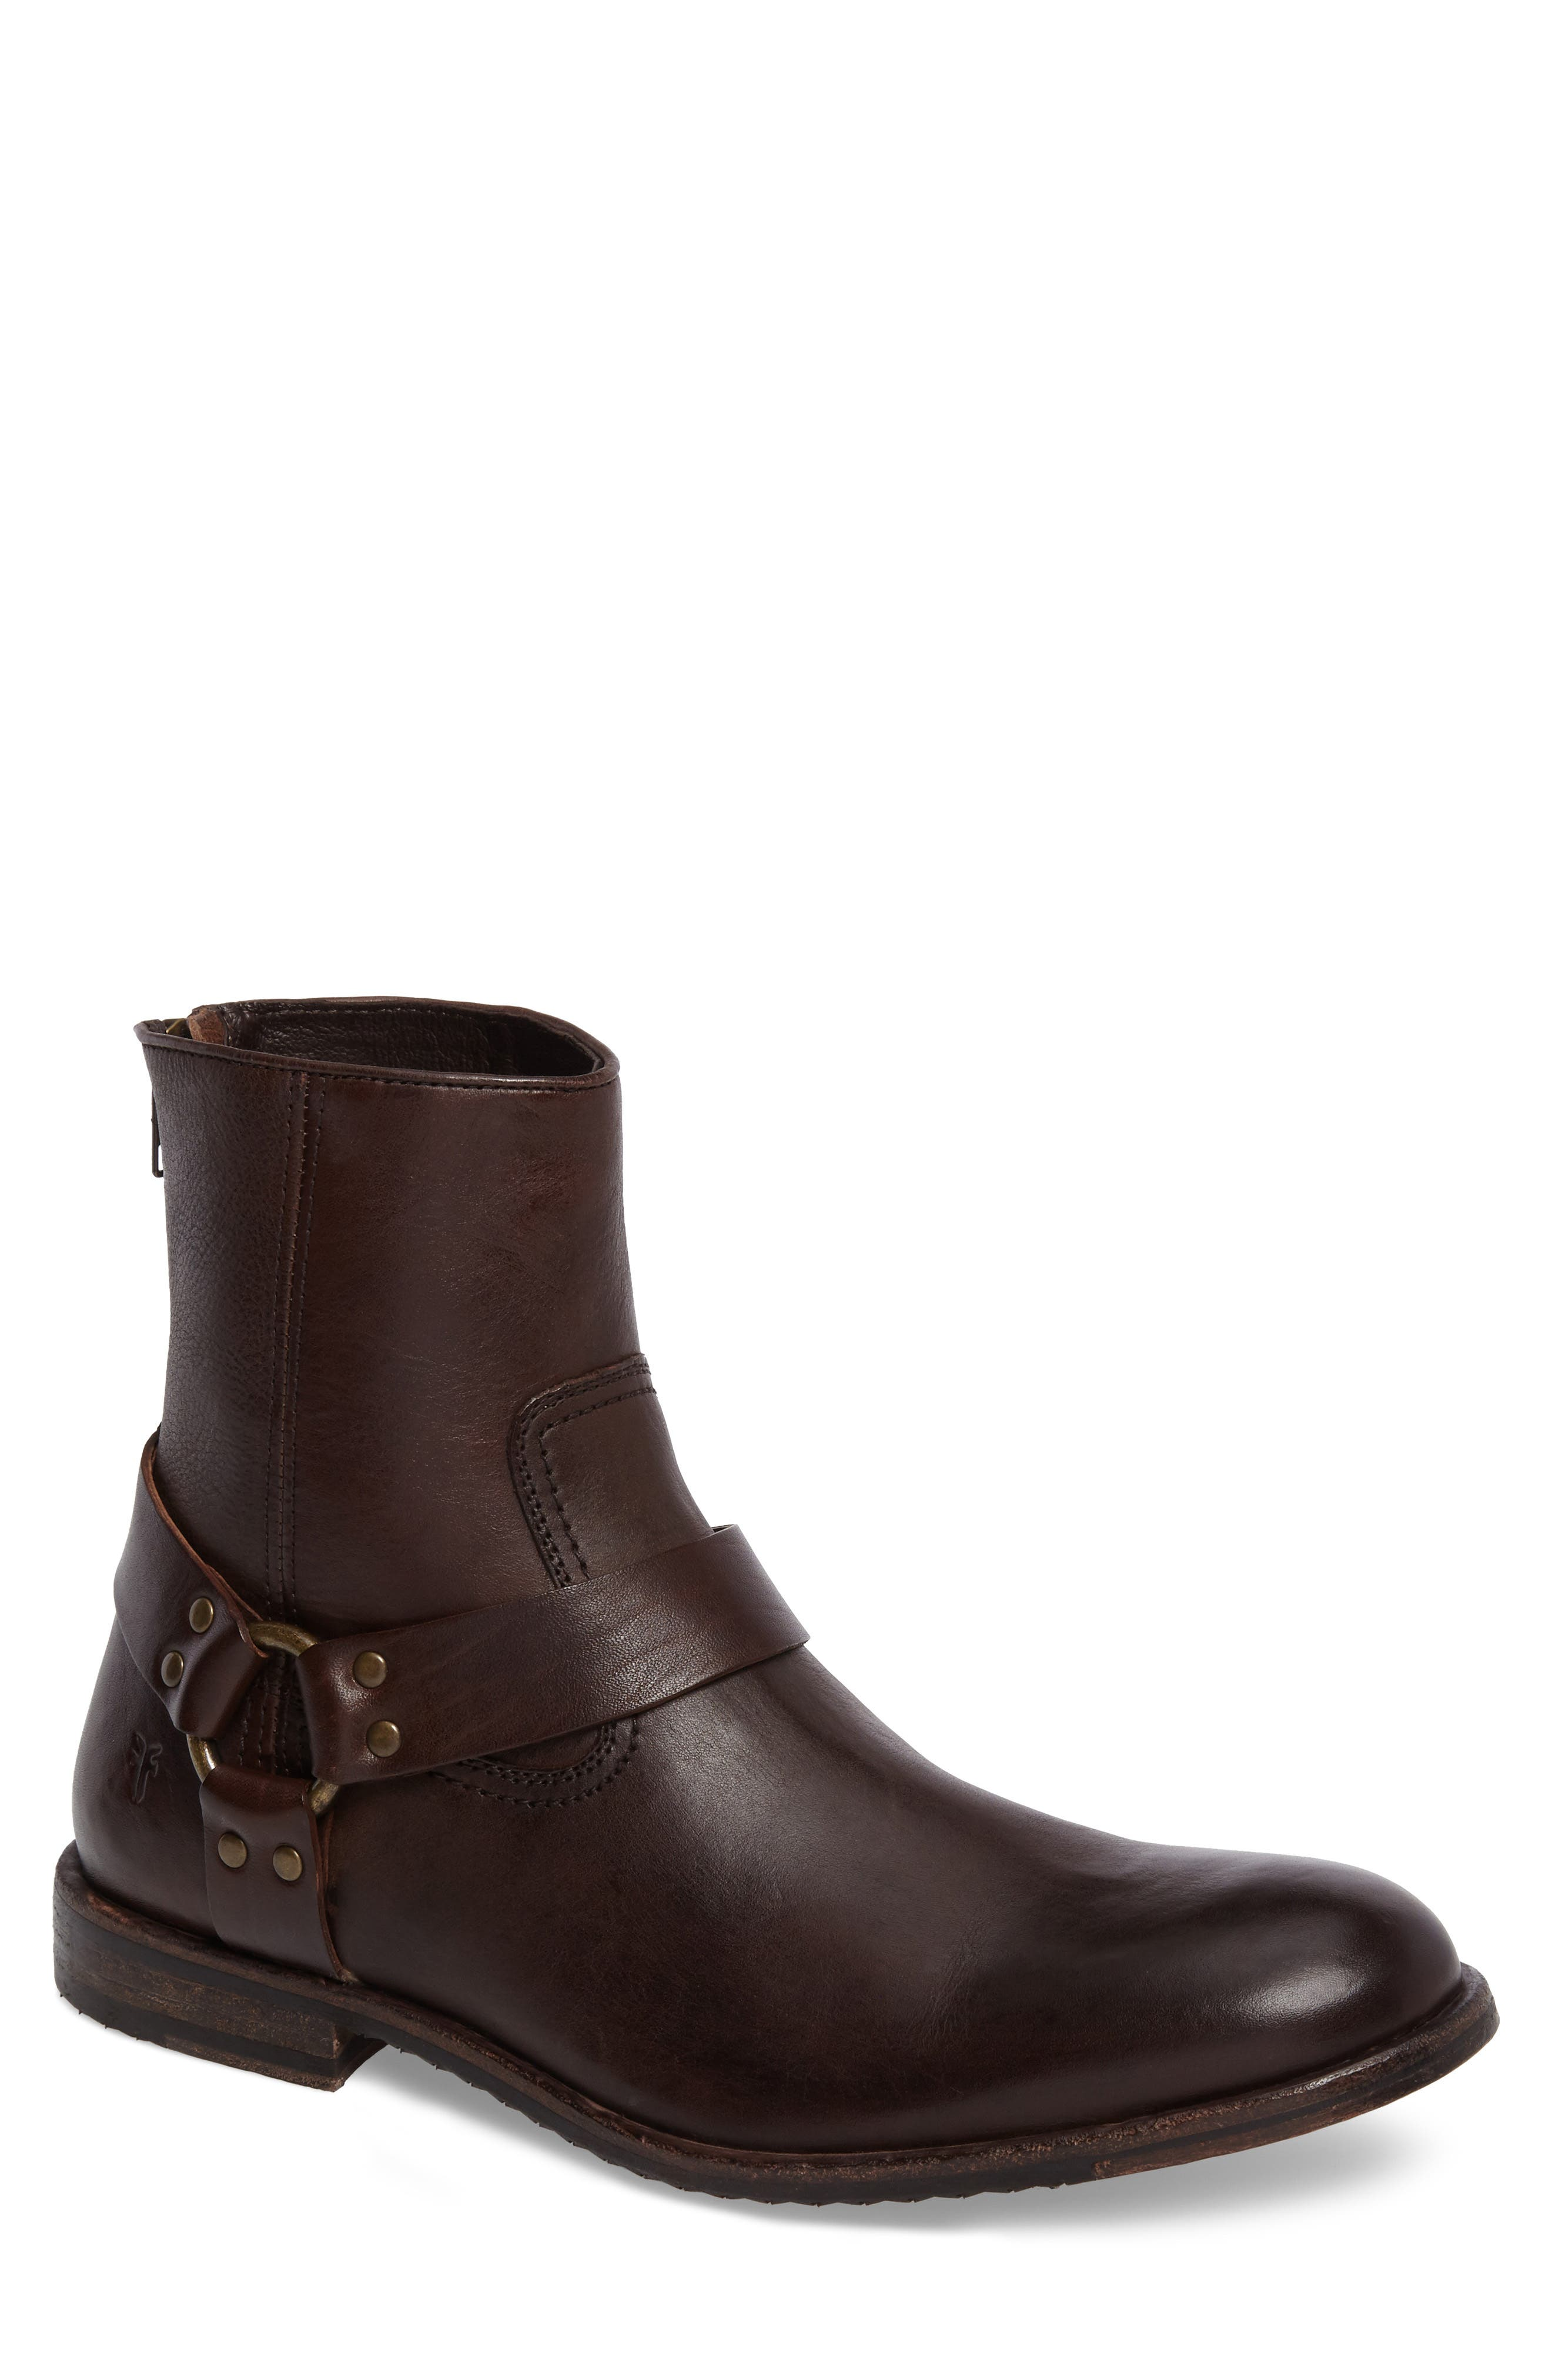 Sam Harness Boot,                             Main thumbnail 1, color,                             Dark Brown Leather